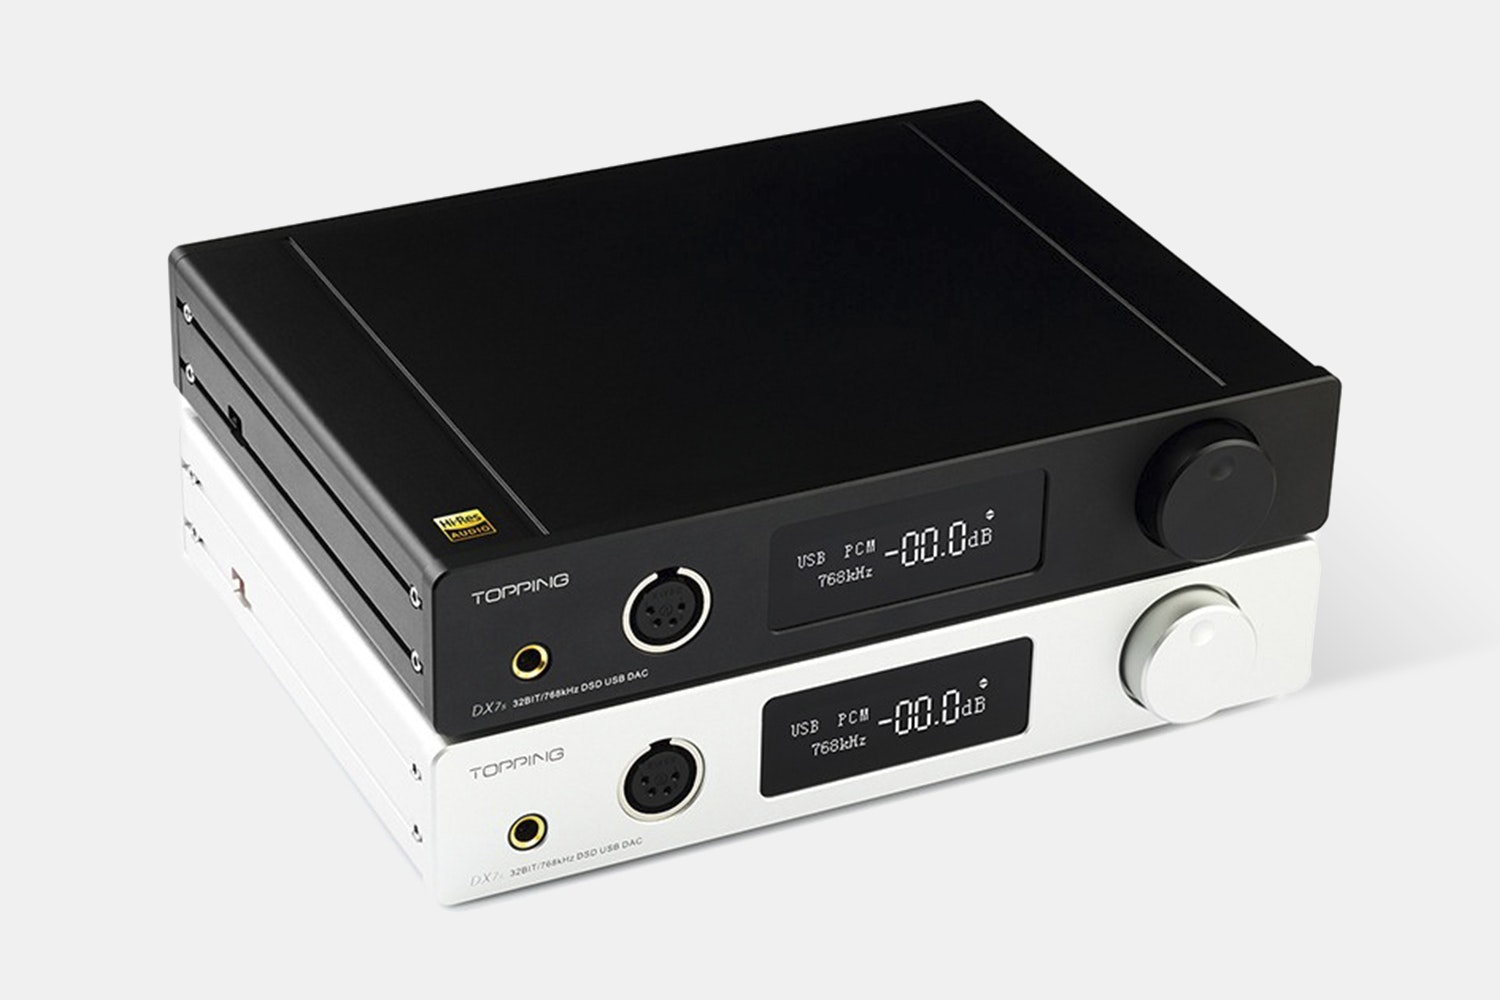 Topping DX7s Balanced DAC/Amp